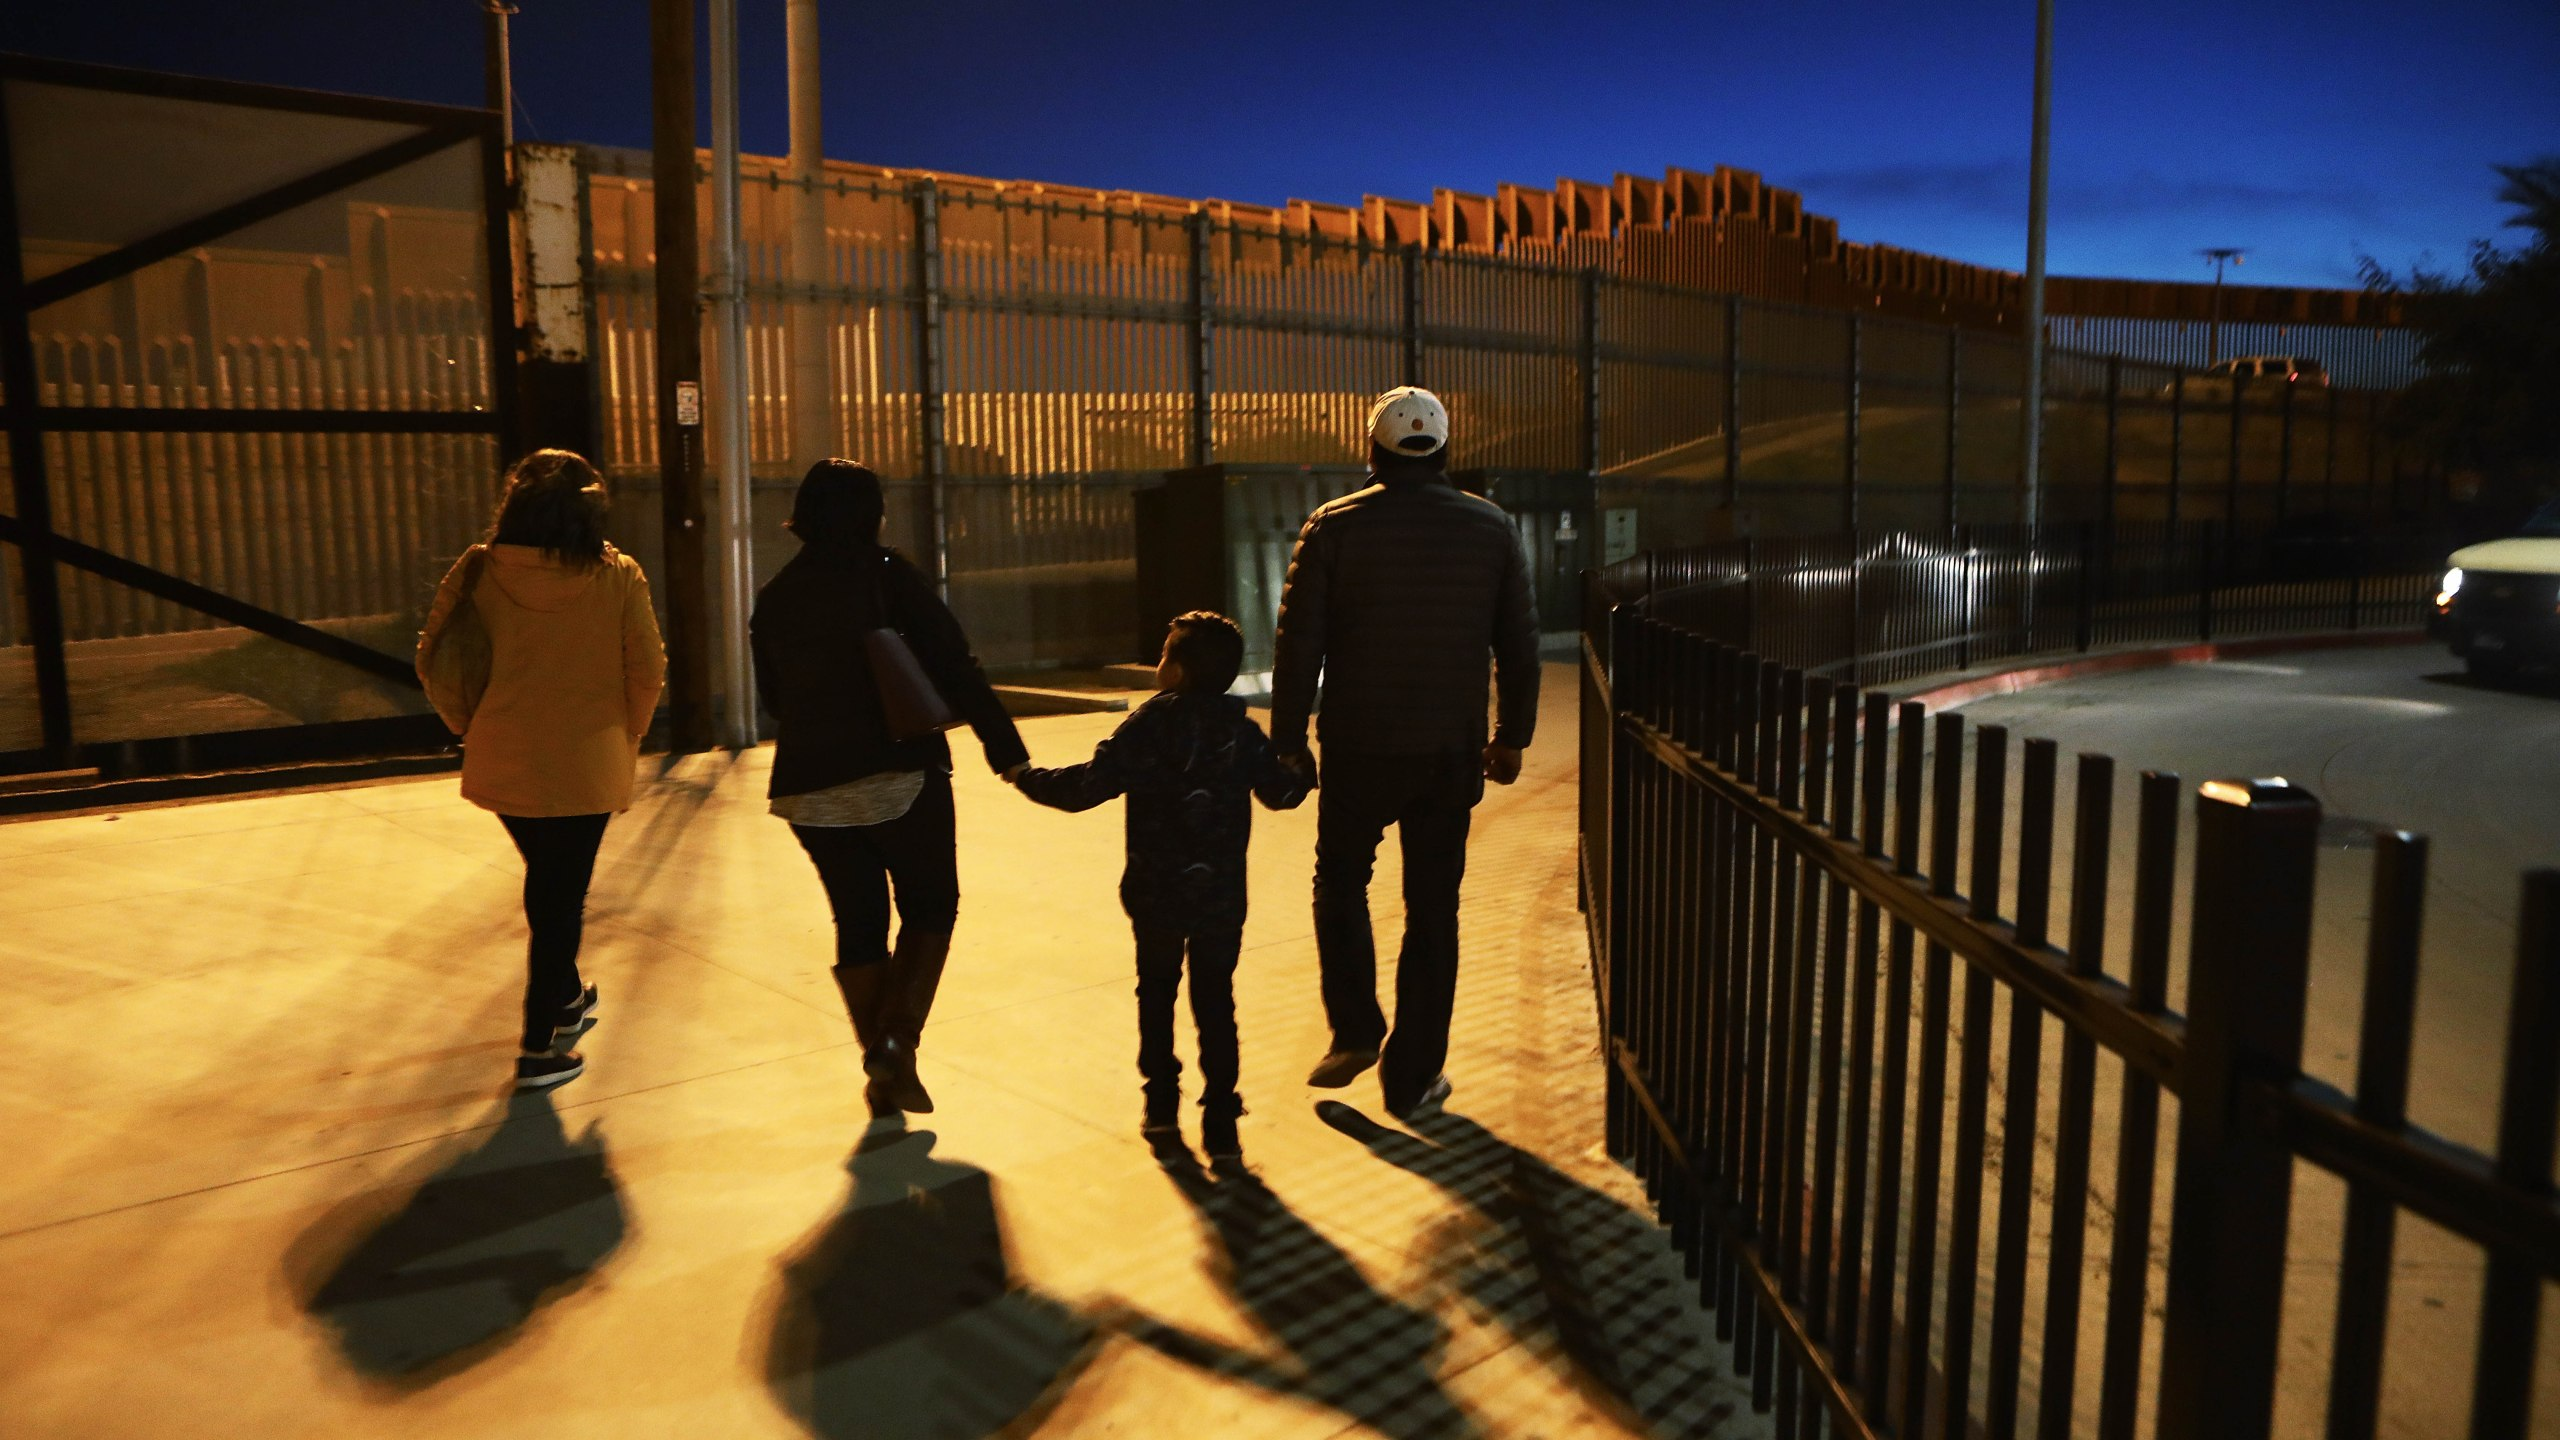 People walk on a sidewalk on the U.S. side of the U.S.-Mexico border barrier in San Diego on Jan. 25, 2019. (Credit: Mario Tama / Getty Images)